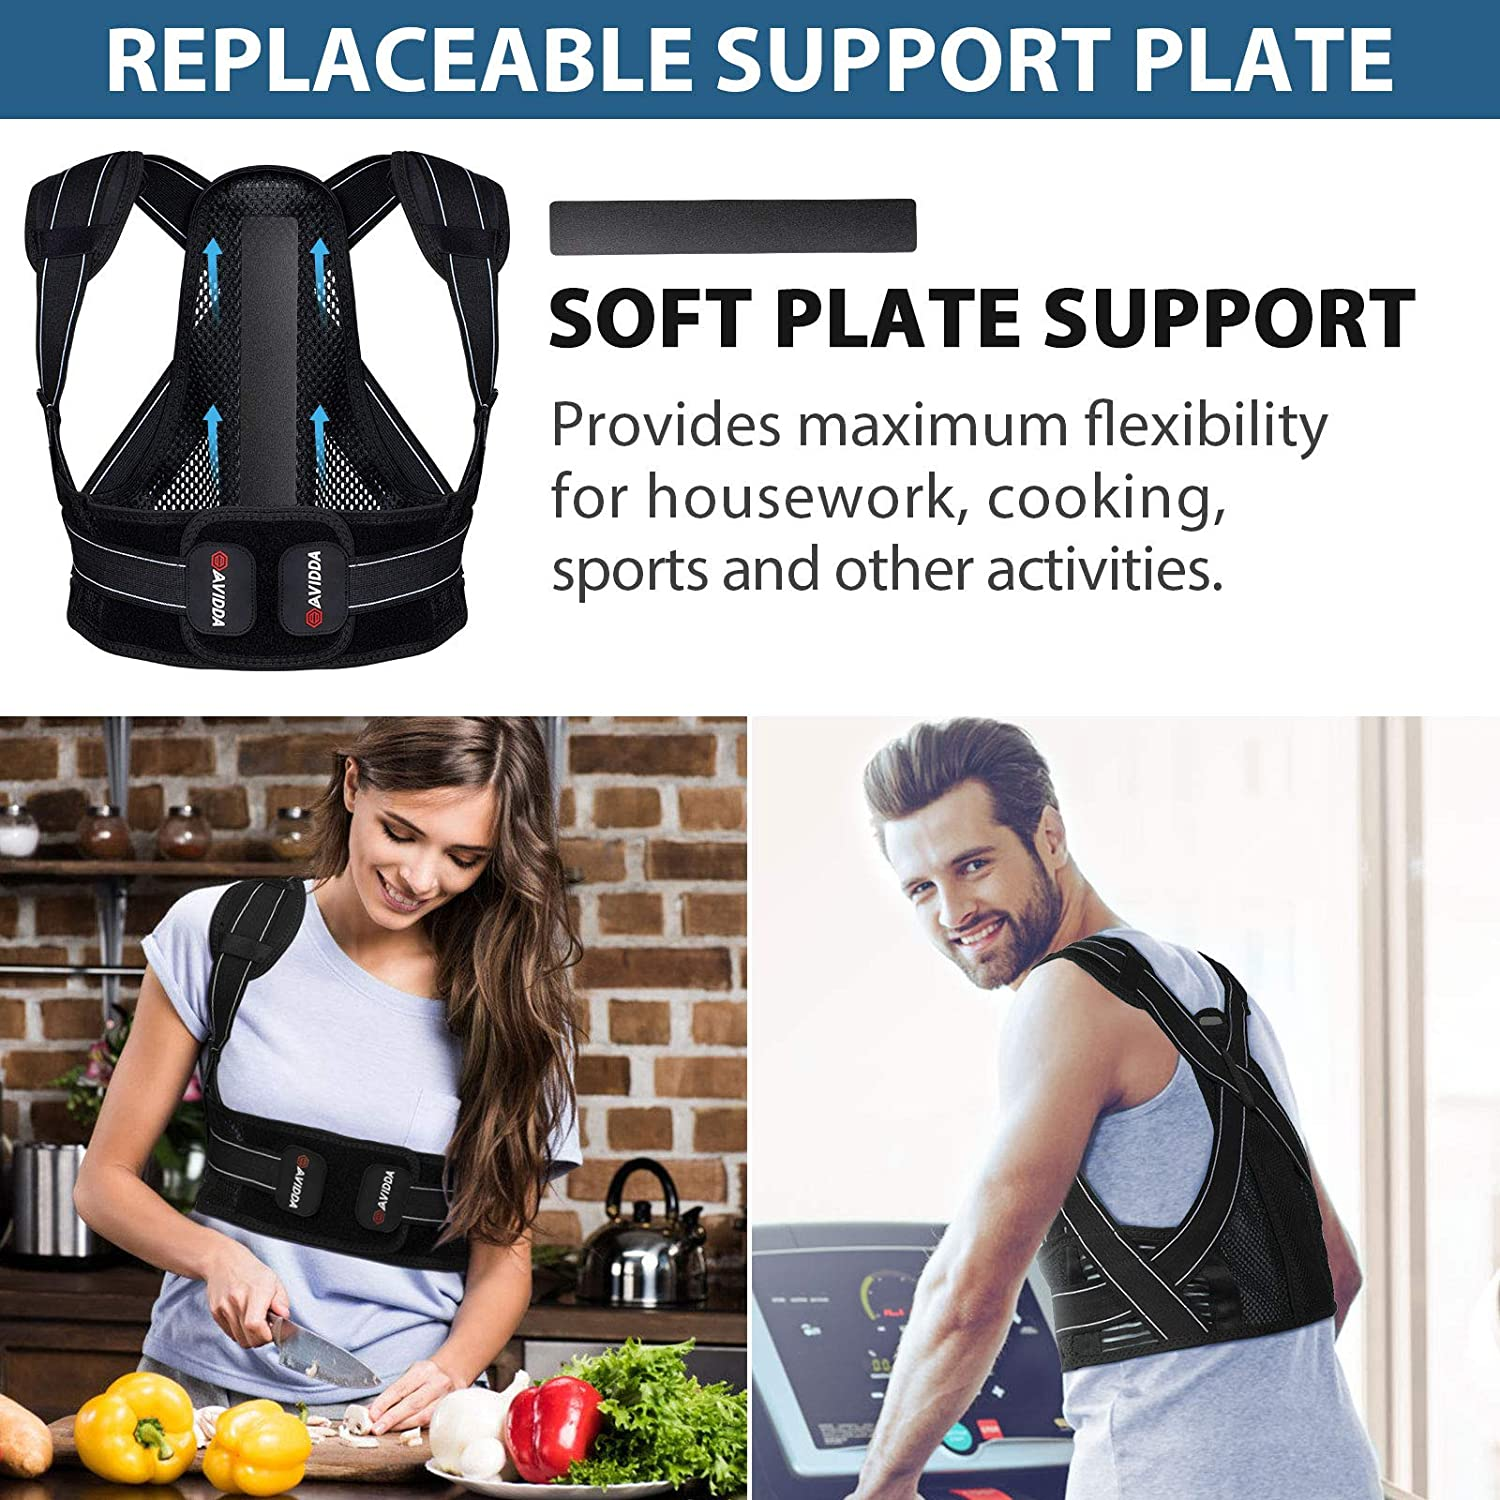 AVIDDA Posture Corrector for Men and Women, Upgraded Back Brace with Replaceable Support Plates, Adjustable and Breathable Back Support for Back, Neck and Shoulder Pain Relief: Industrial & Scientific